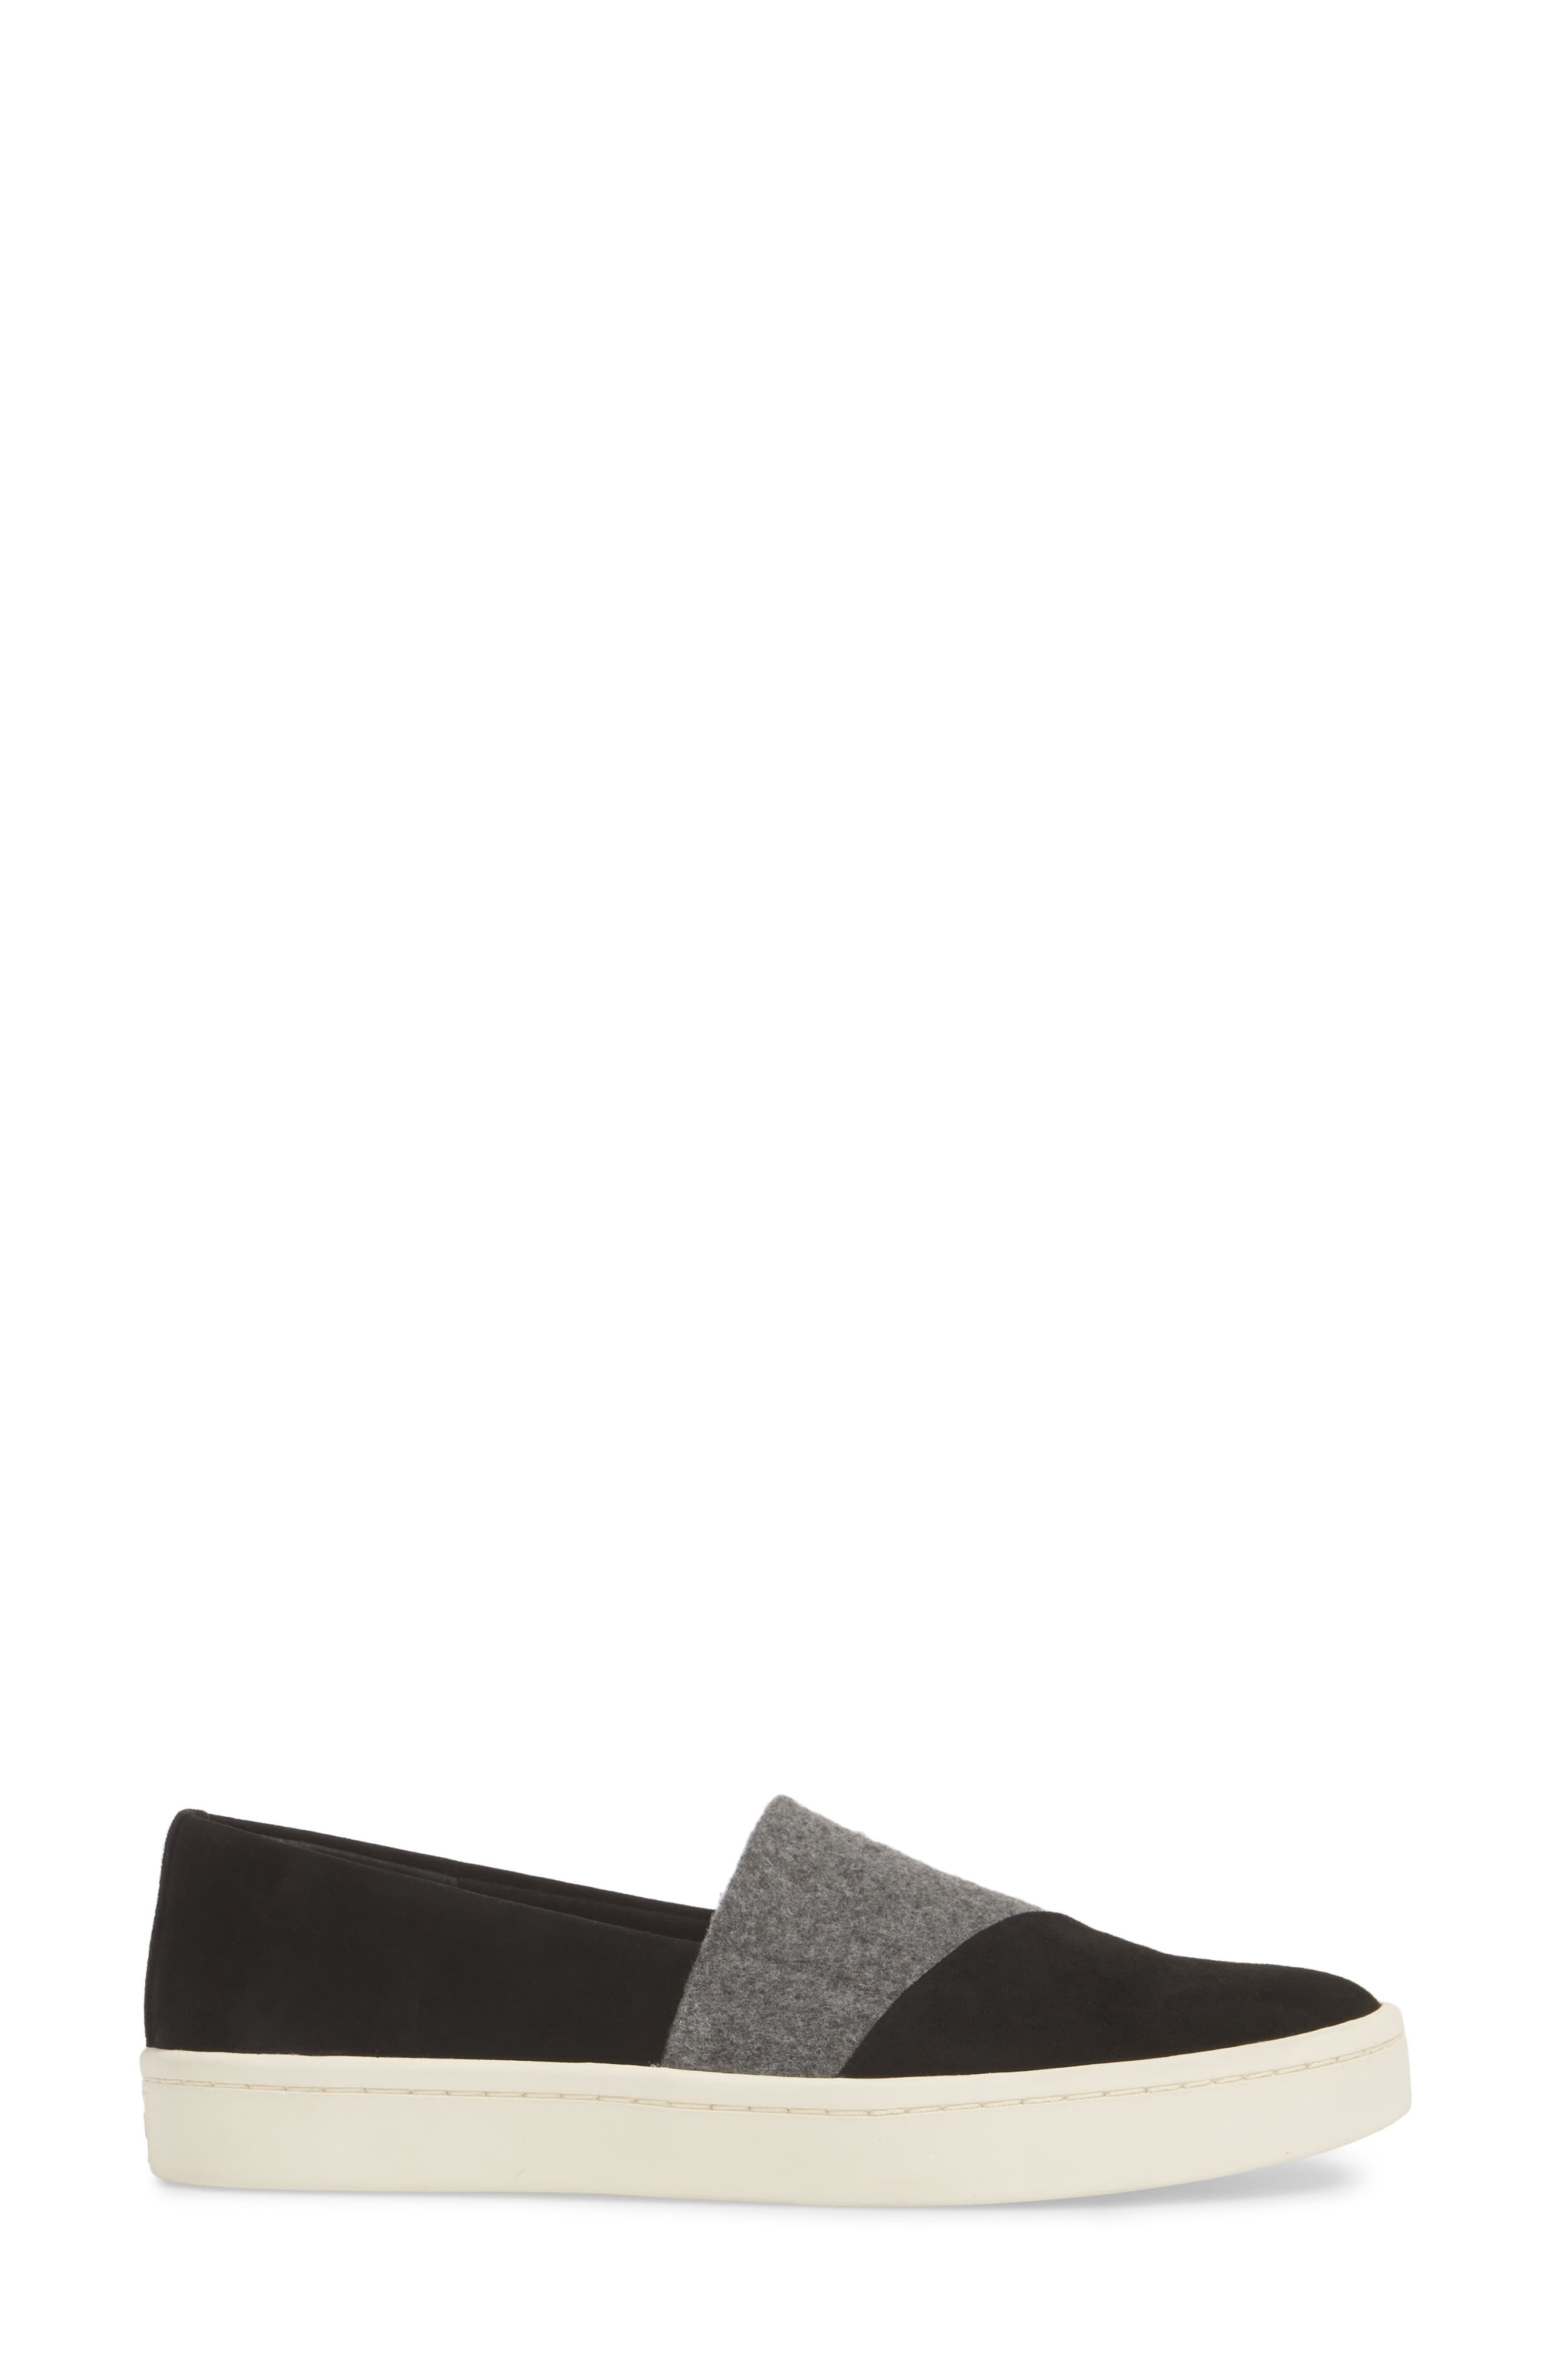 Nouvel Slip-On Sneaker,                             Alternate thumbnail 3, color,                             Black/ Grey Suede